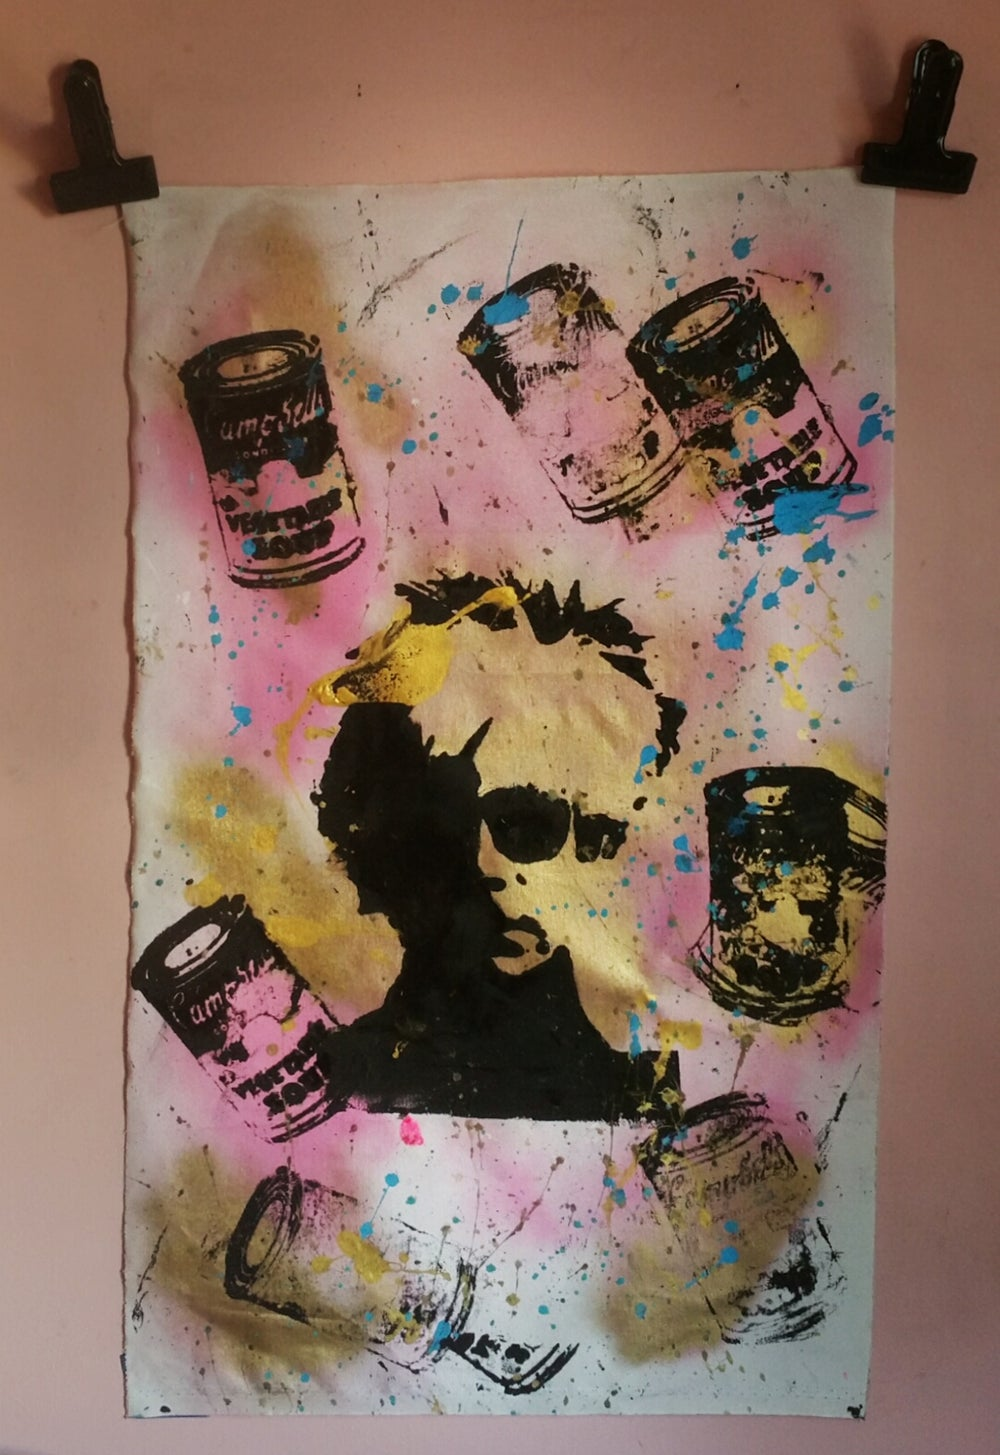 Image of ANDY WARHOL. CAMPBELLE SOUP.